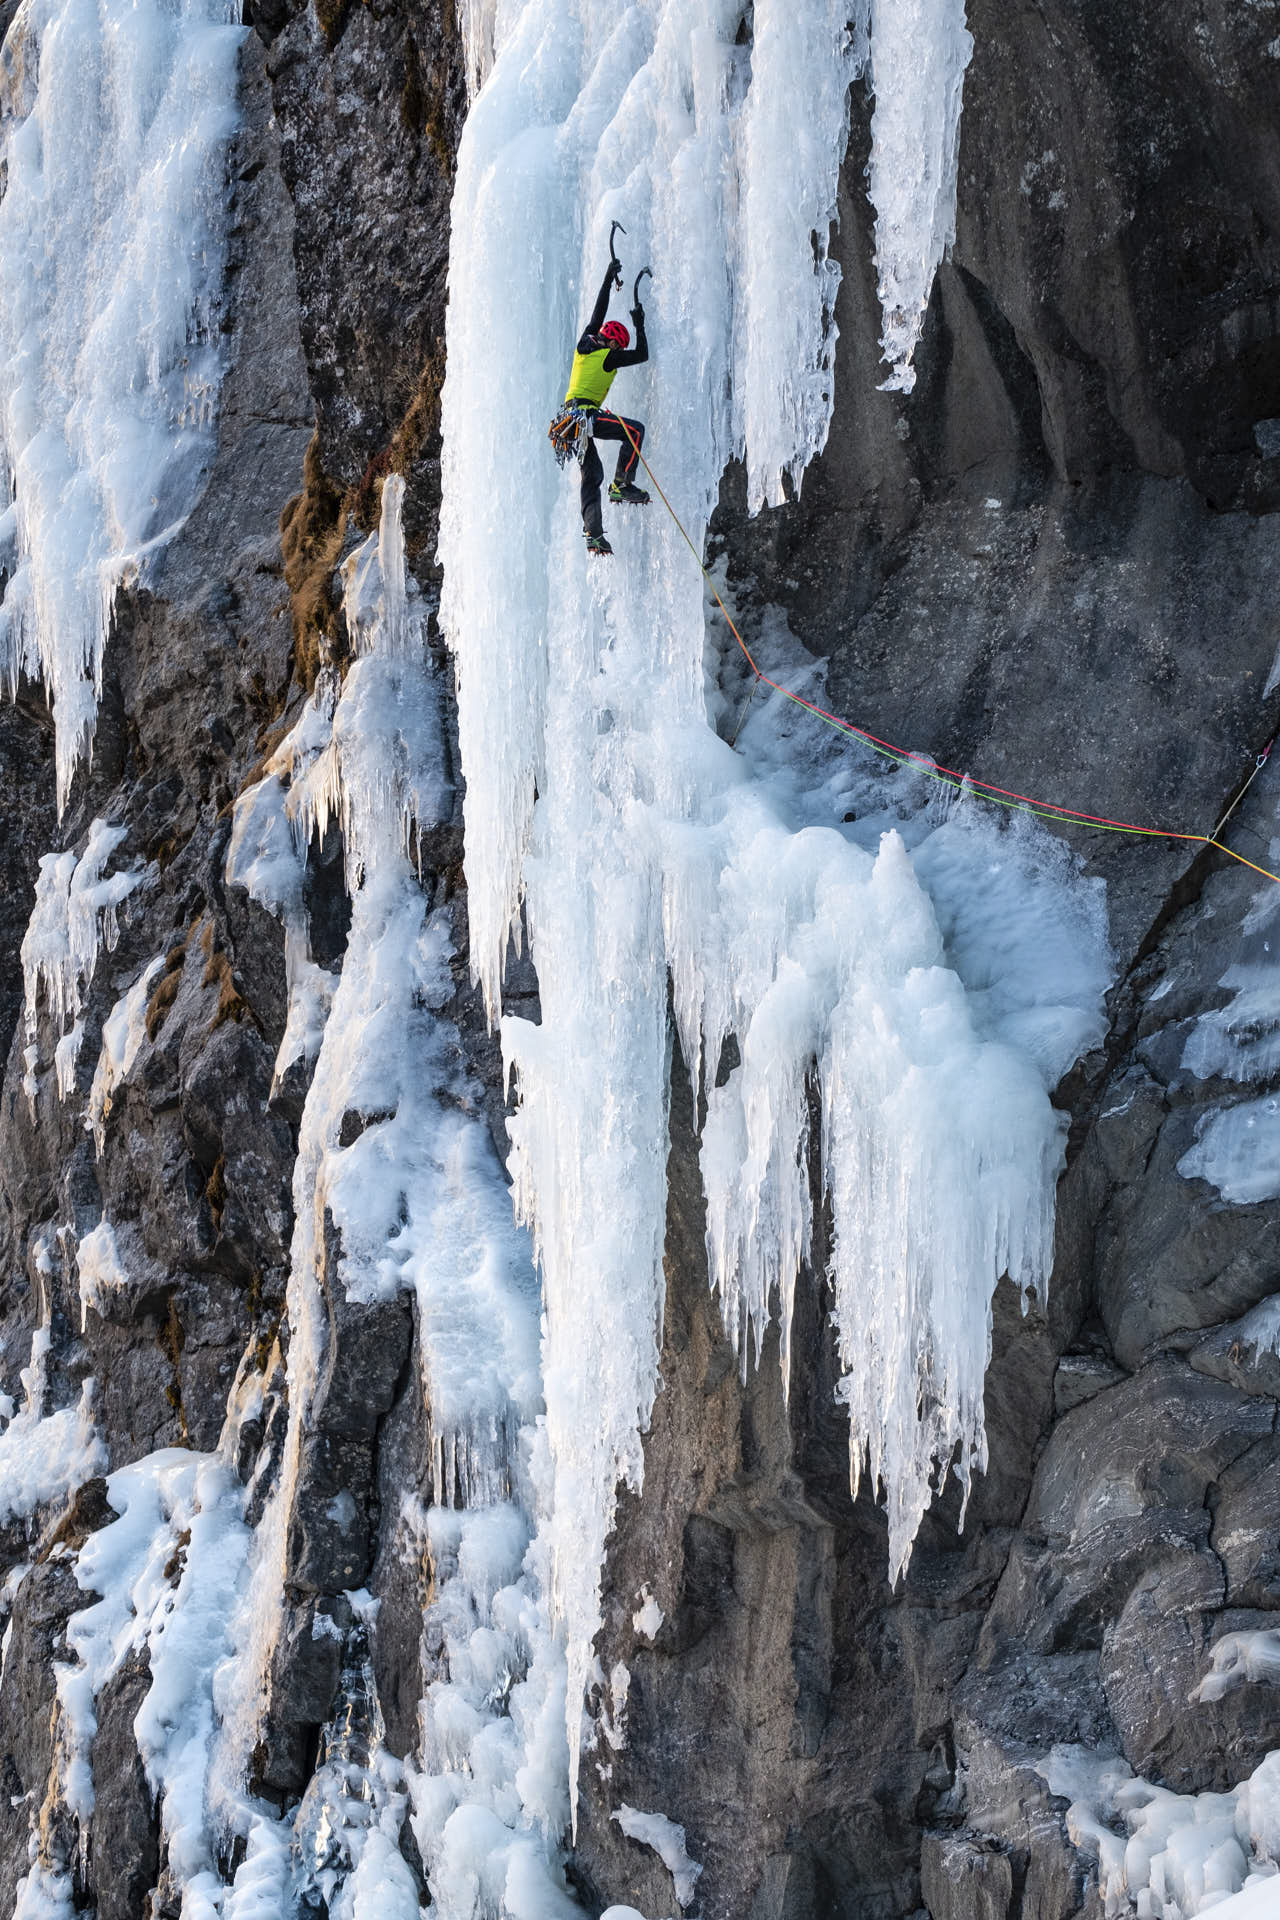 A person ice climbing a frozen water fall. Gravity.